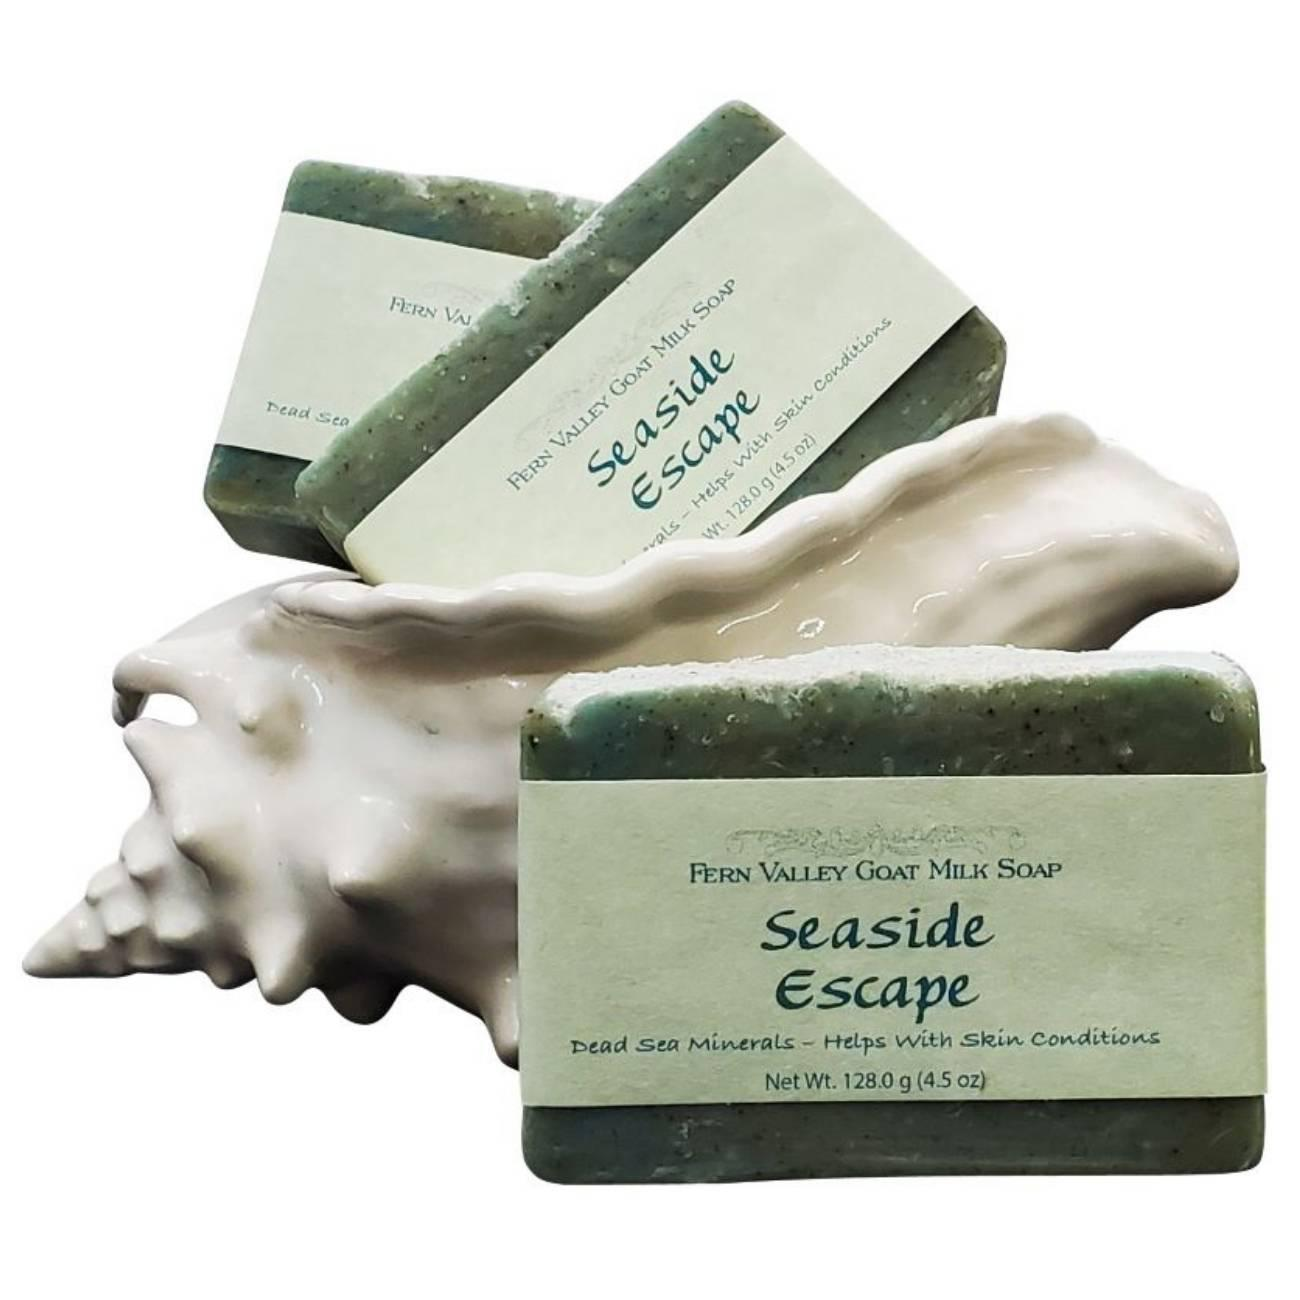 Fern Valley Goat Milk Soap Bars Seaside Escape (Dead Sea Mineral to help condition skin)